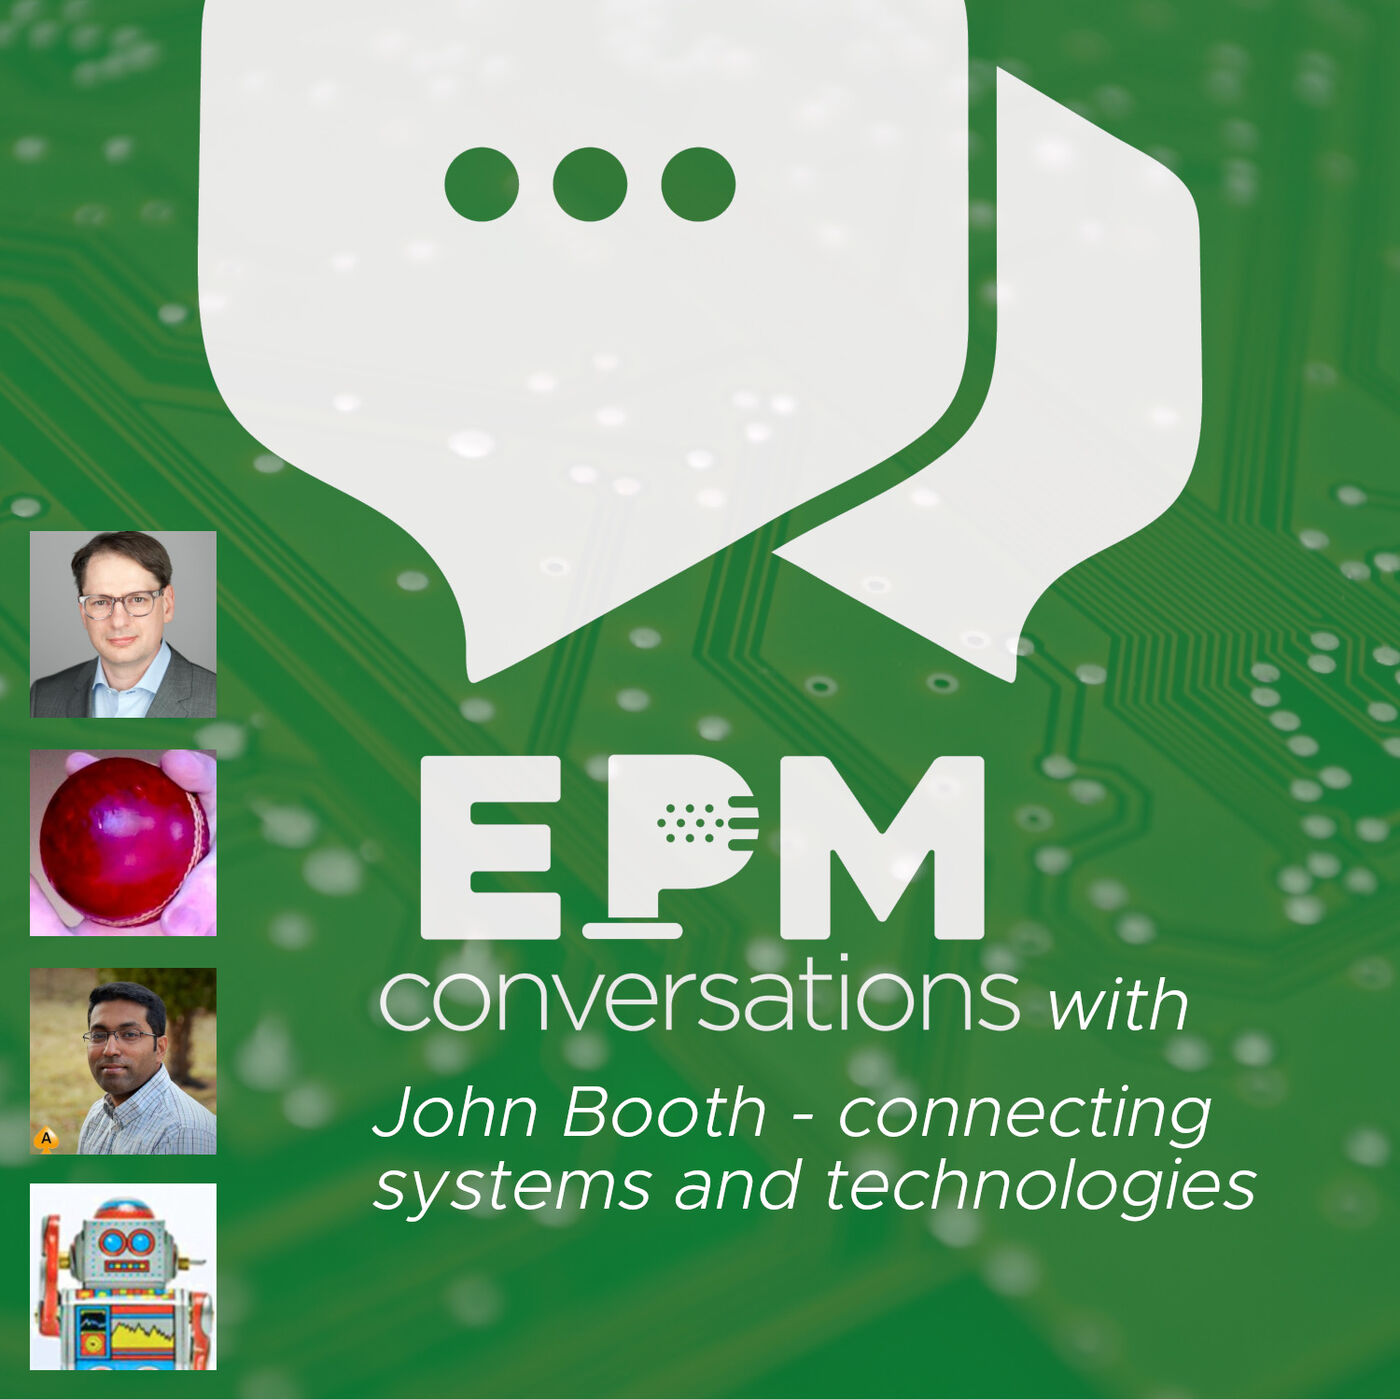 EPM Conversations — Episode No. 4, a conversation with John Booth